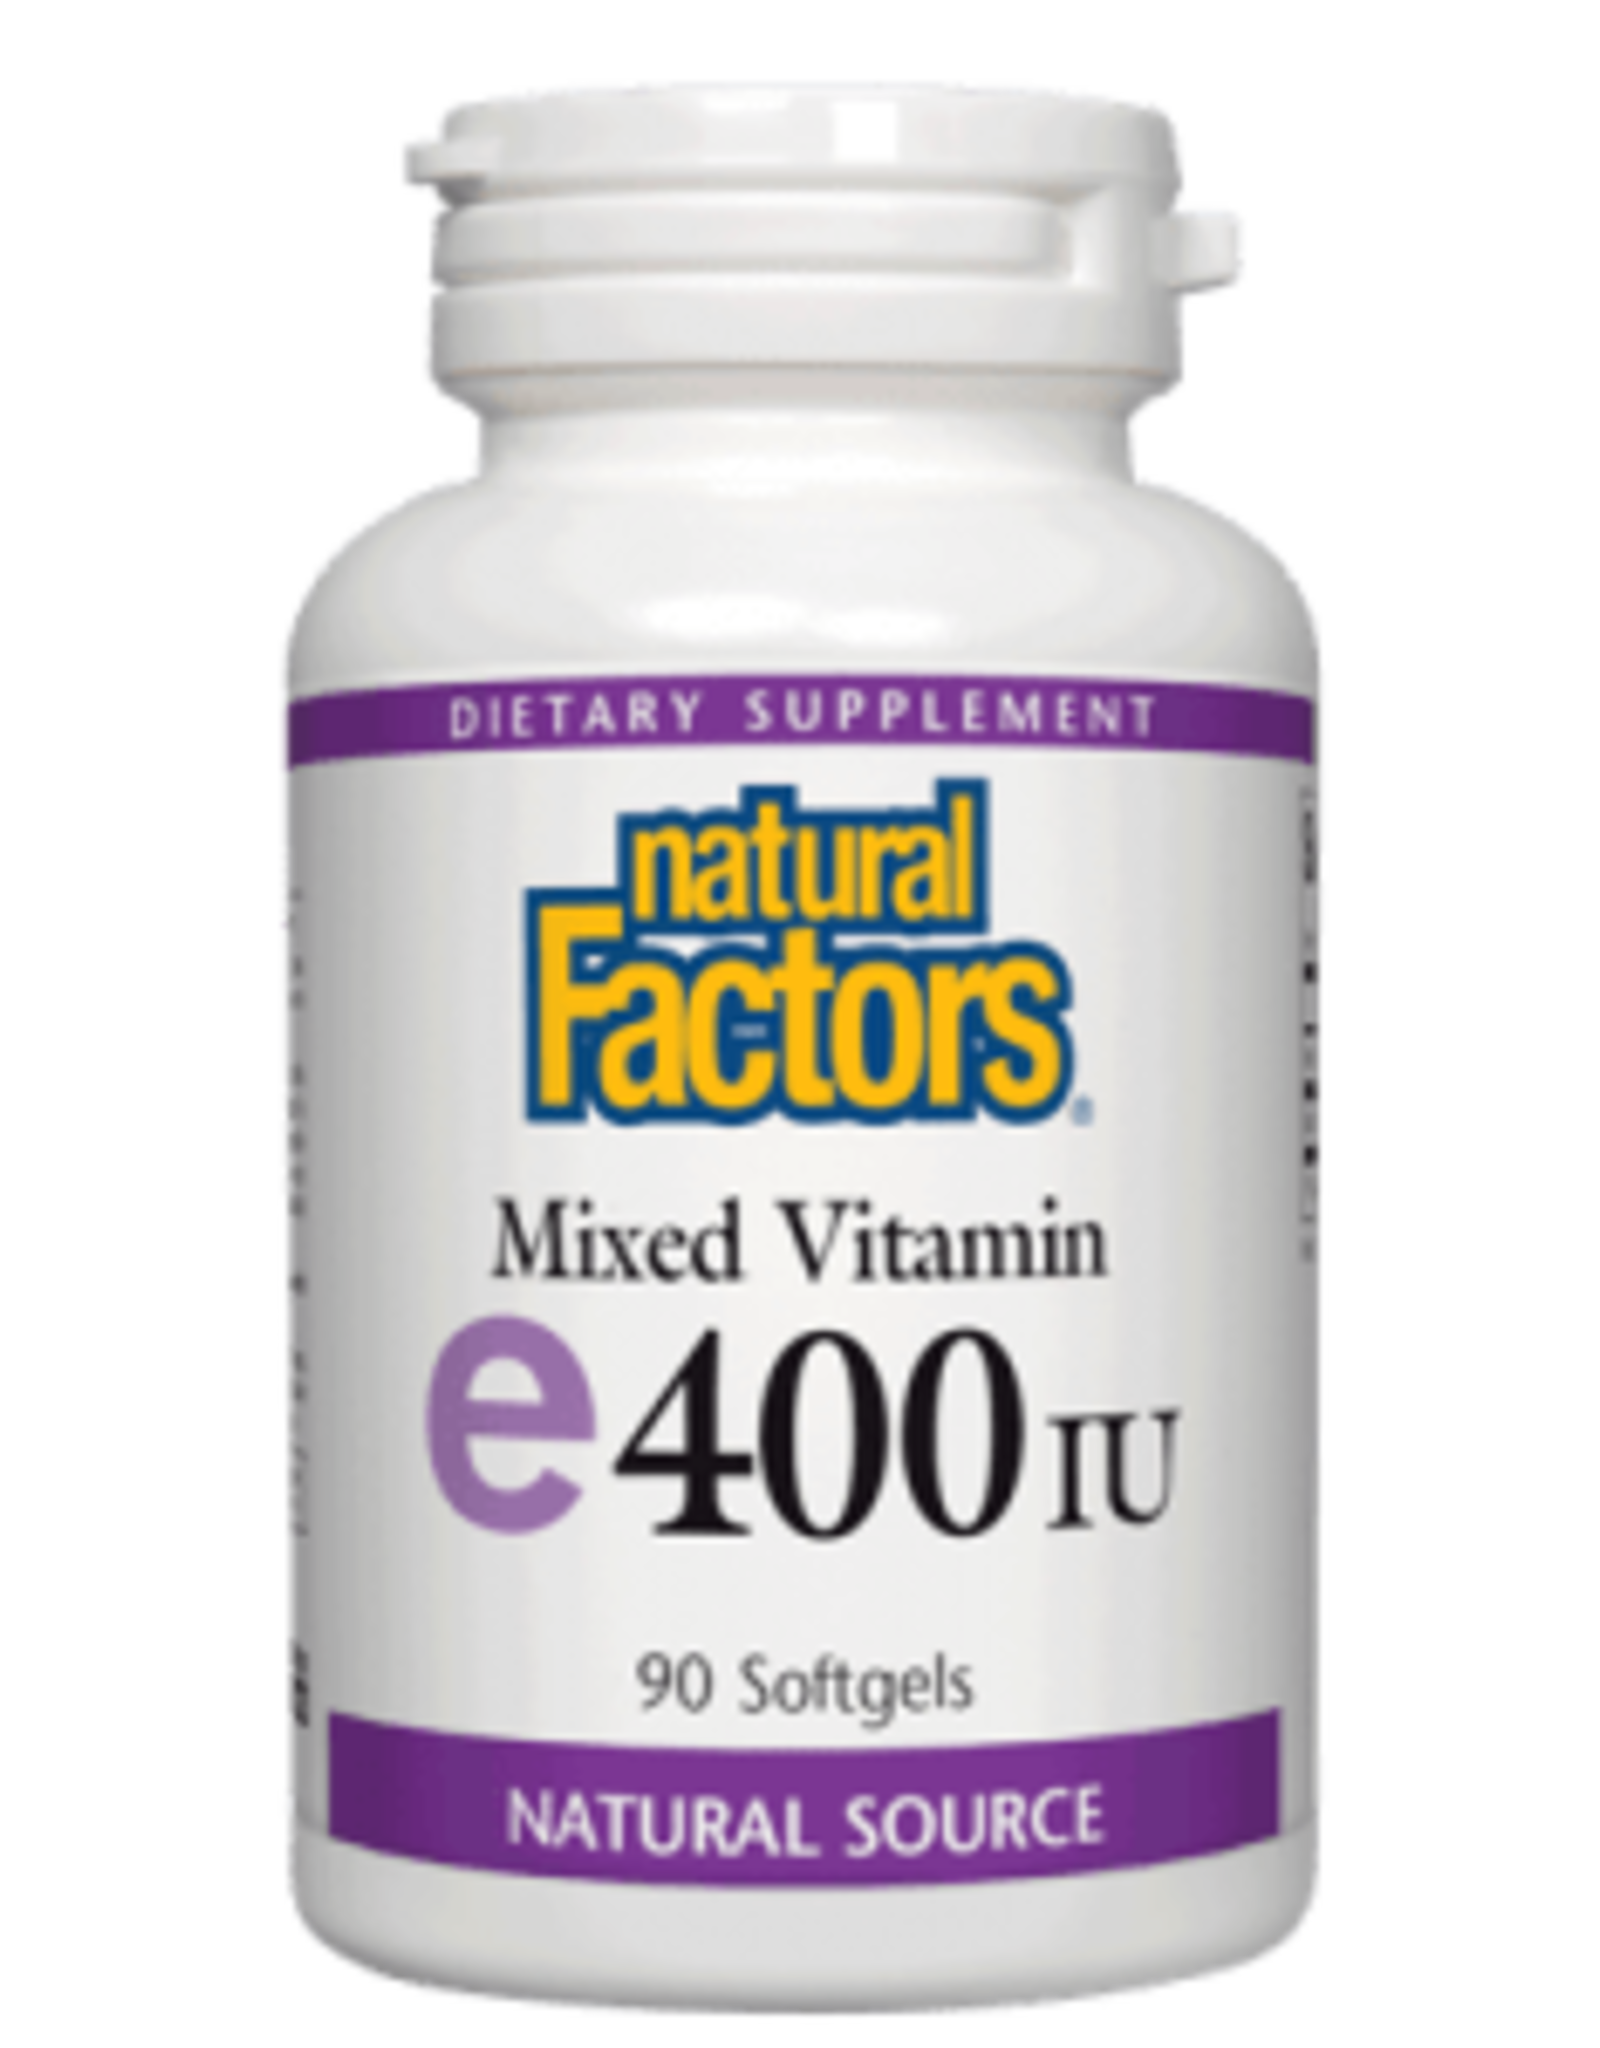 Natural Factors Vit E 400 IU (d-alpha tocopherol) with 10 mg of mixed tocopherols 90/SG